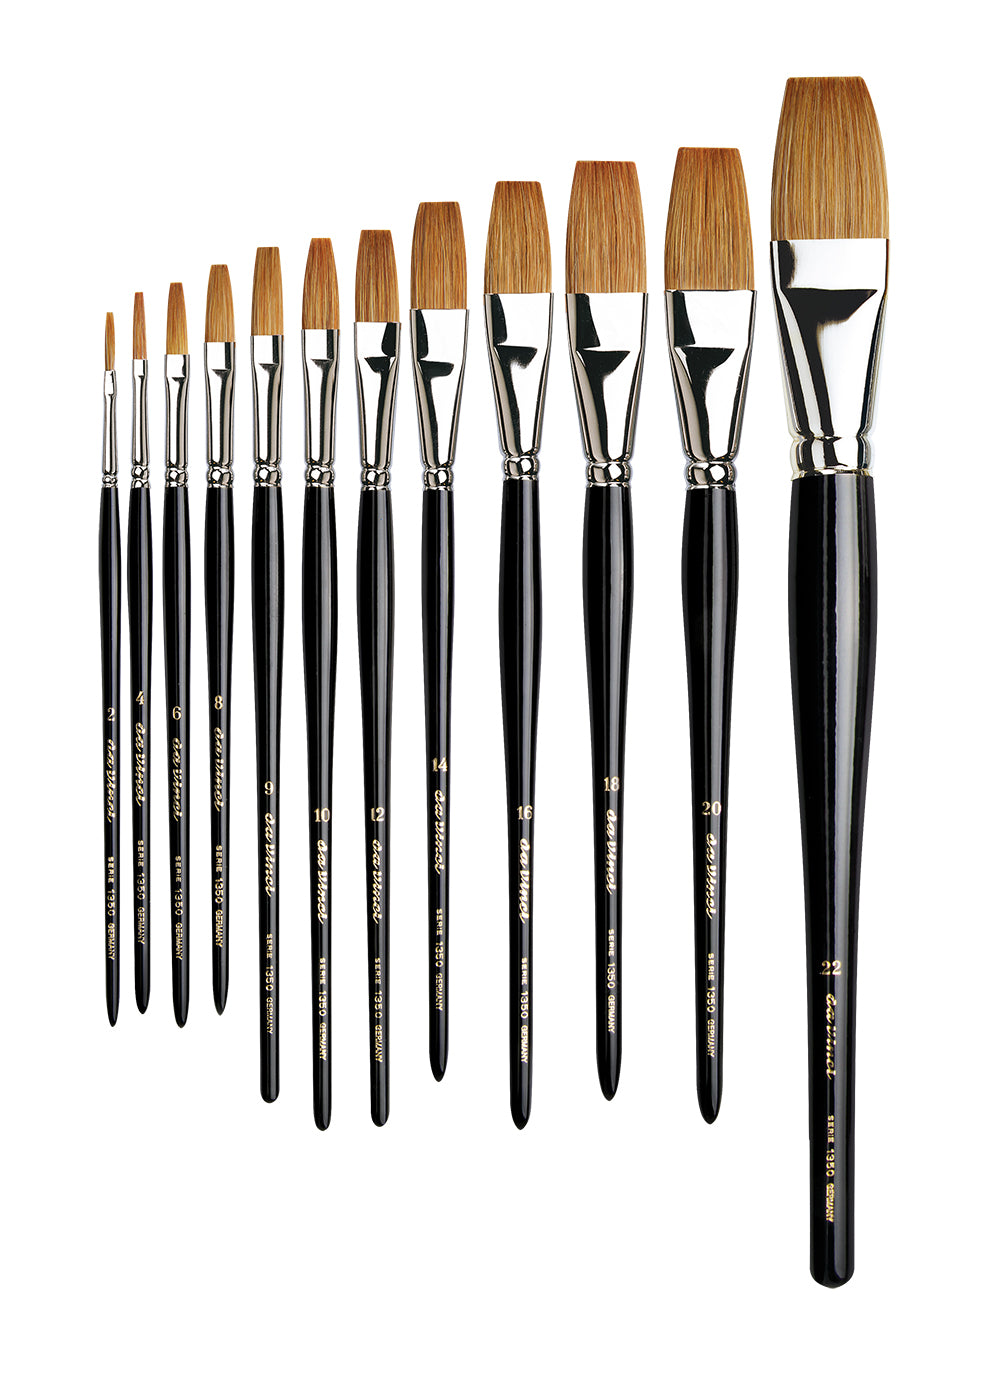 Da Vinci Series 1350 One Stroke Brushes